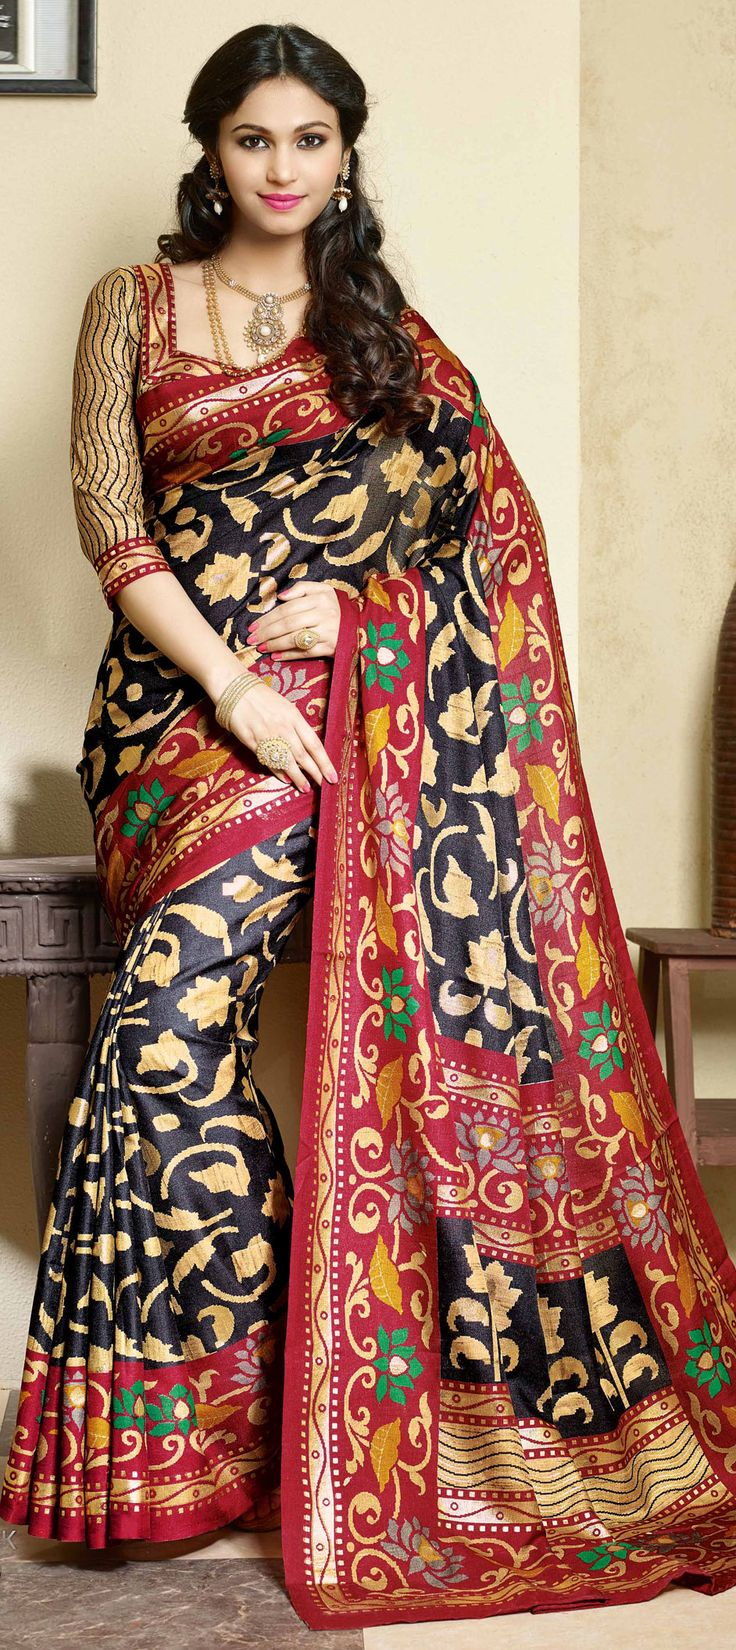 : Multicolor color family Bollywood sarees .